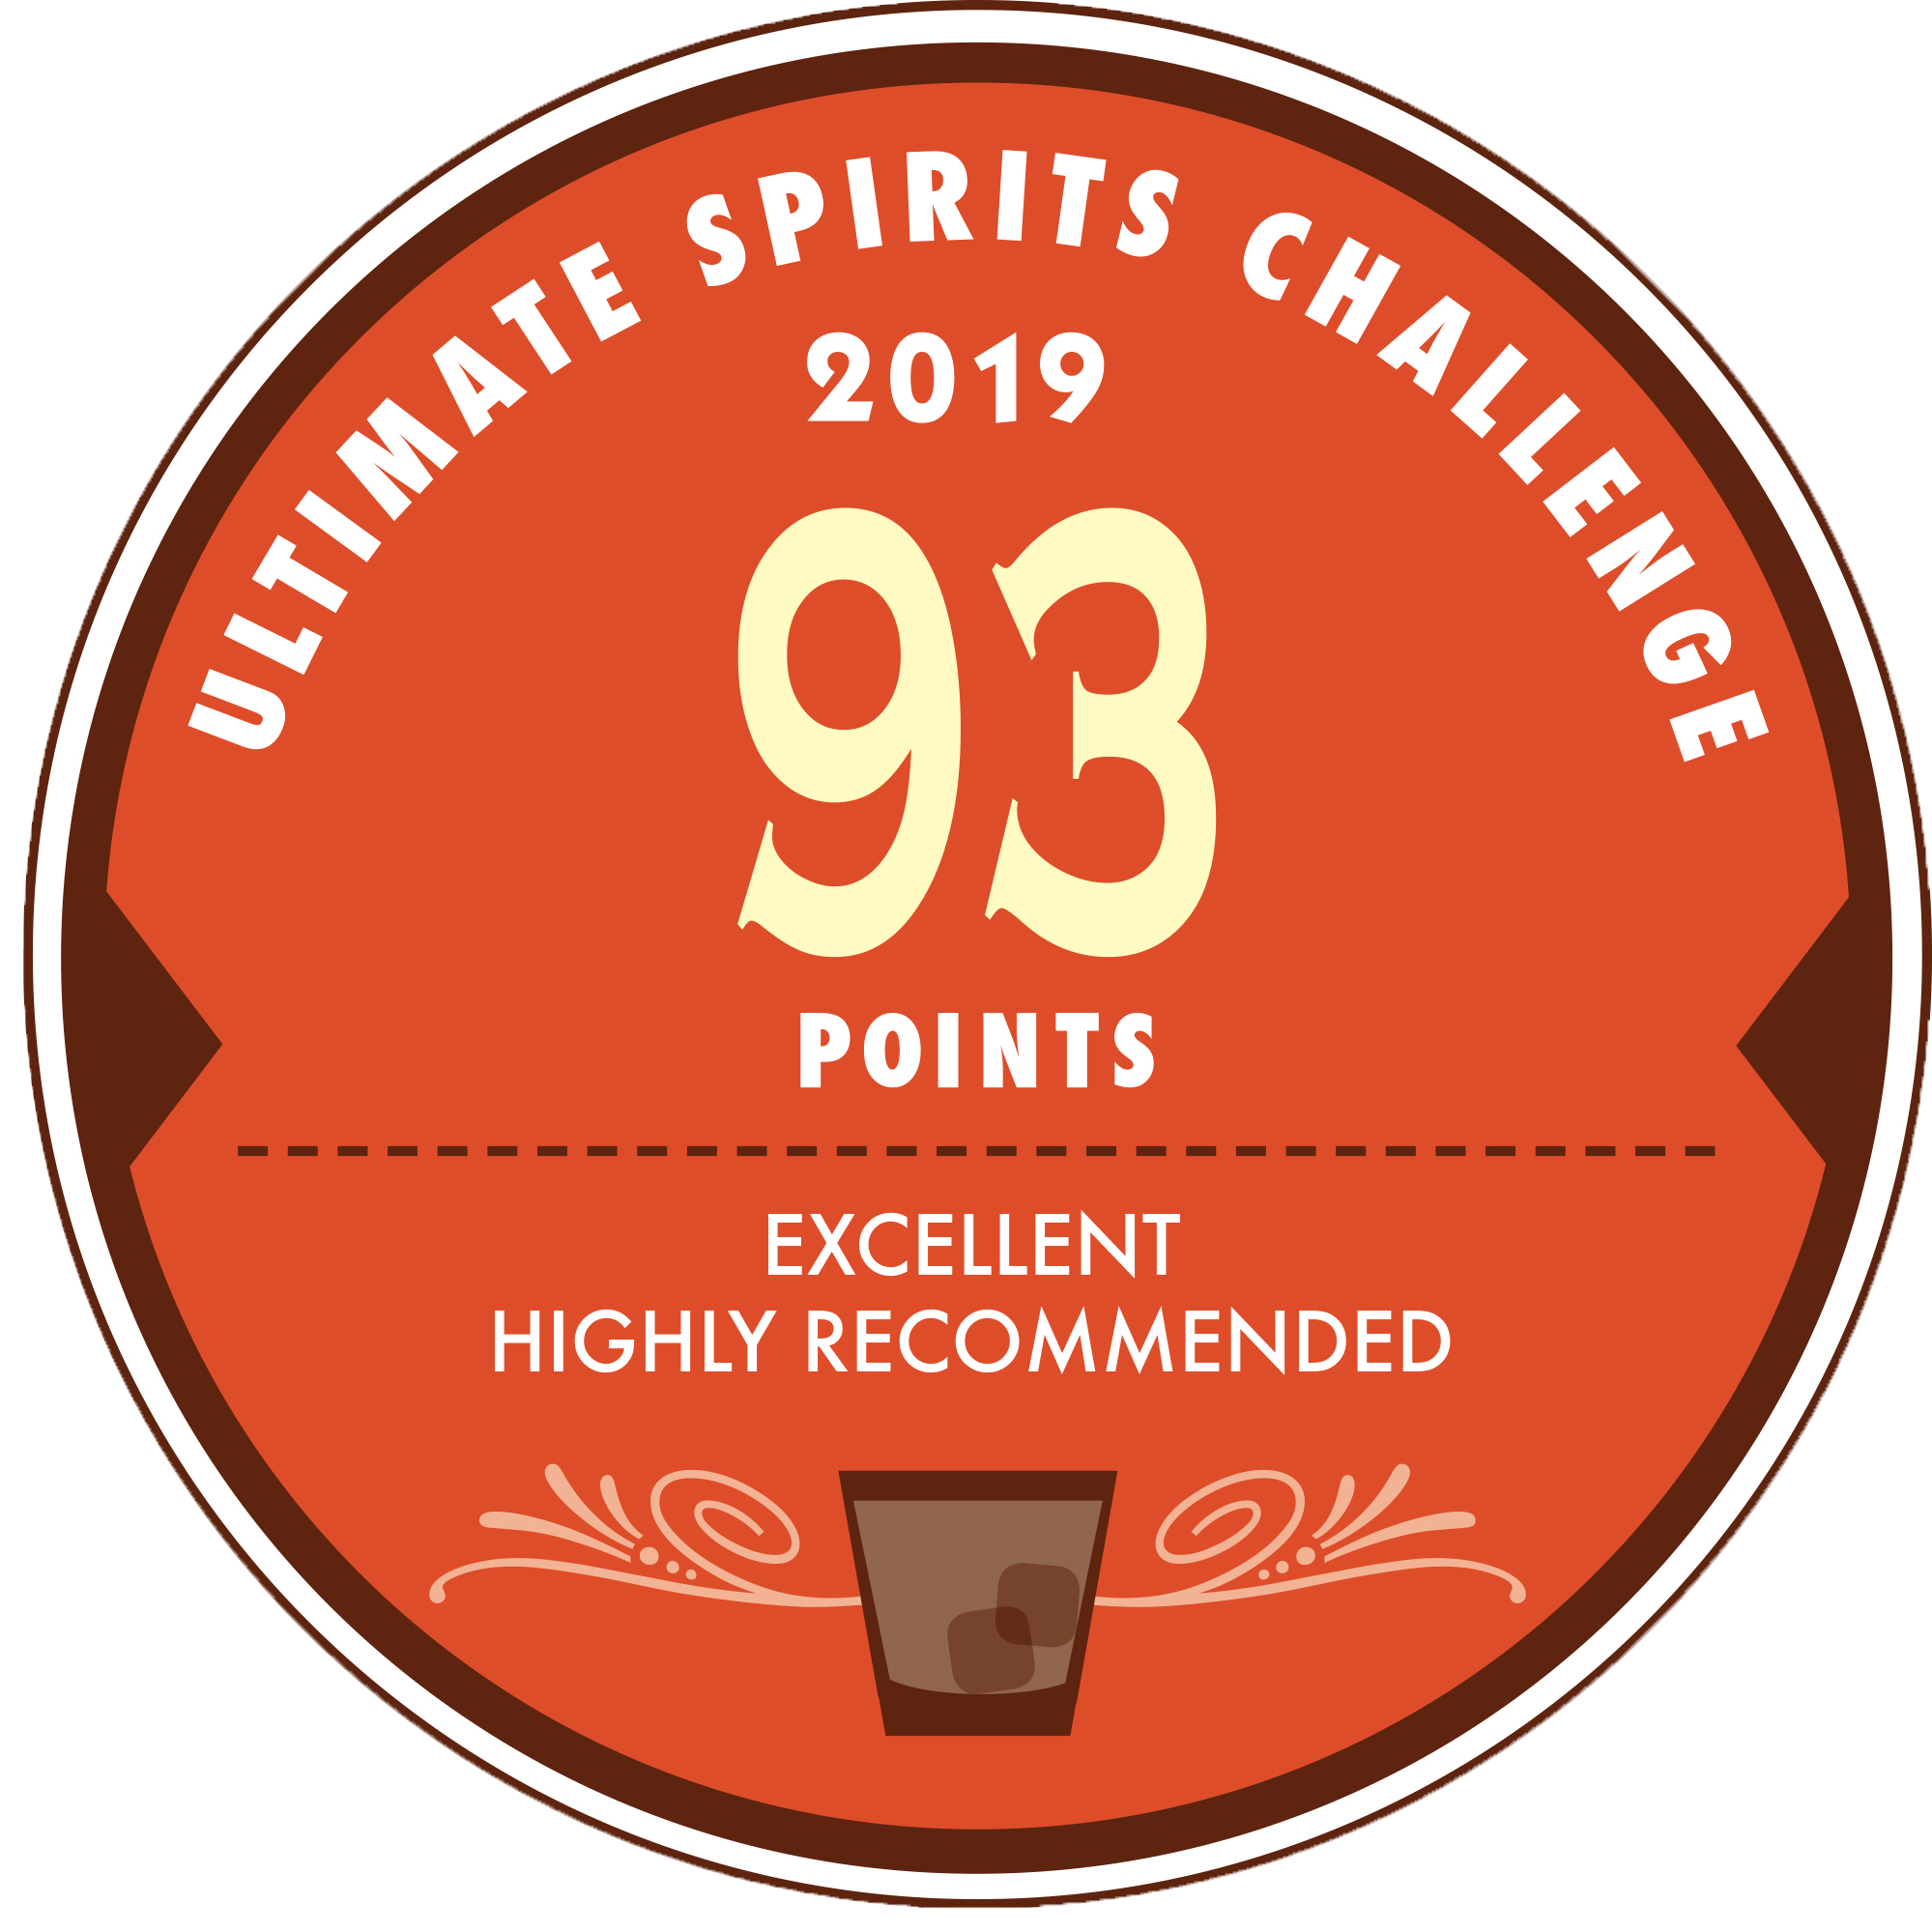 Fiji 2009 : Ultimate Spirits Challenge 2019, 93 points Excellent Highly Recommended, US